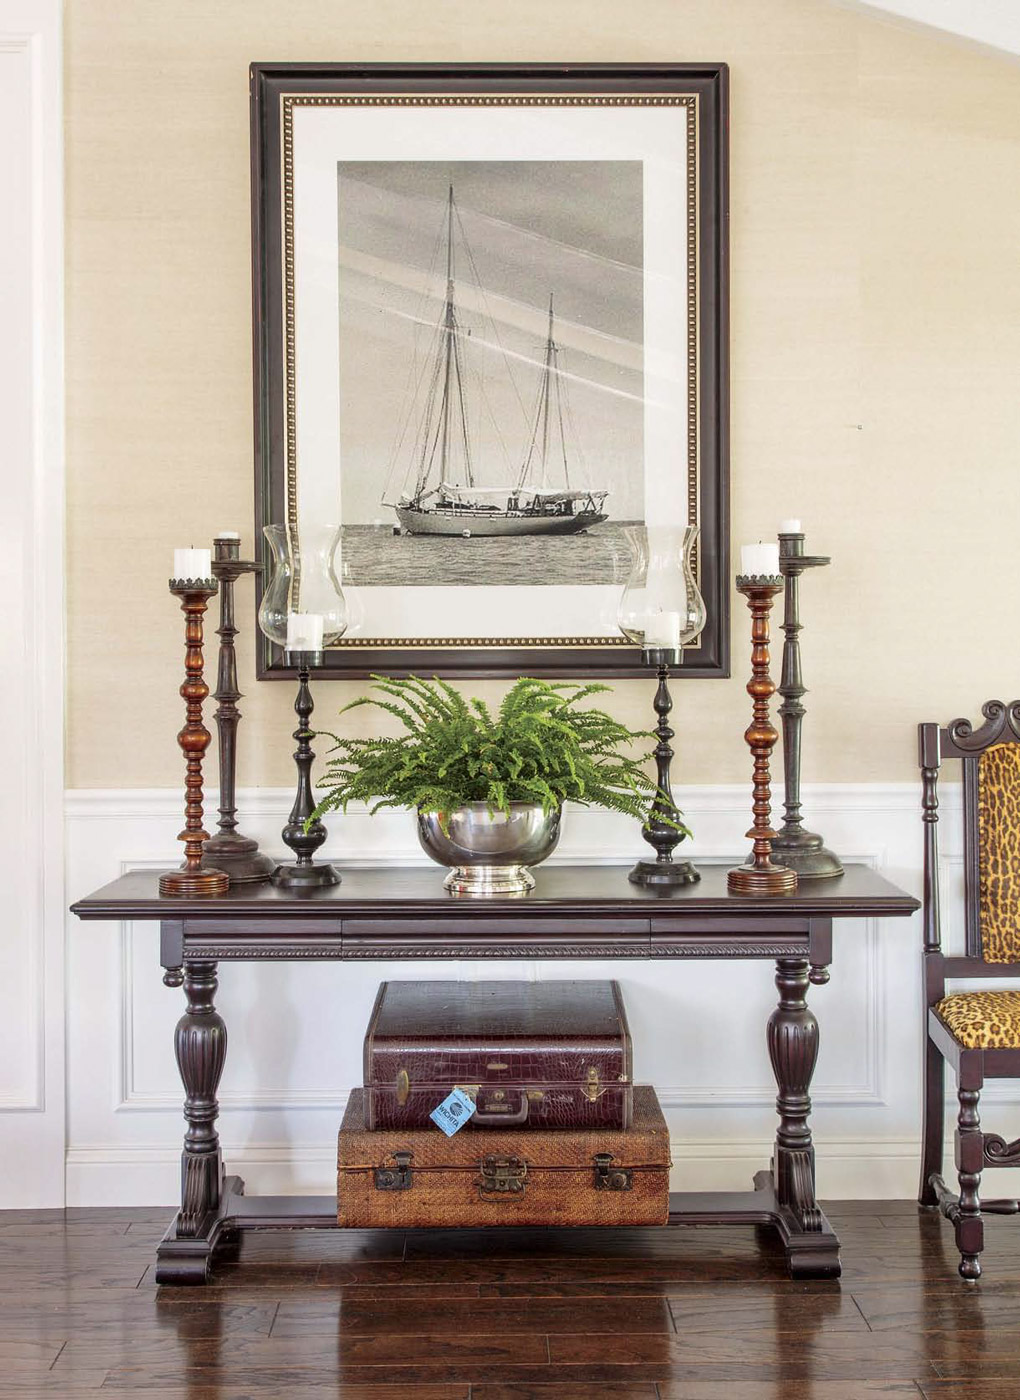 Antique wooden console in the entryway topped with tall candlesticks and a fern, also displaying vintage suitcases underneath.